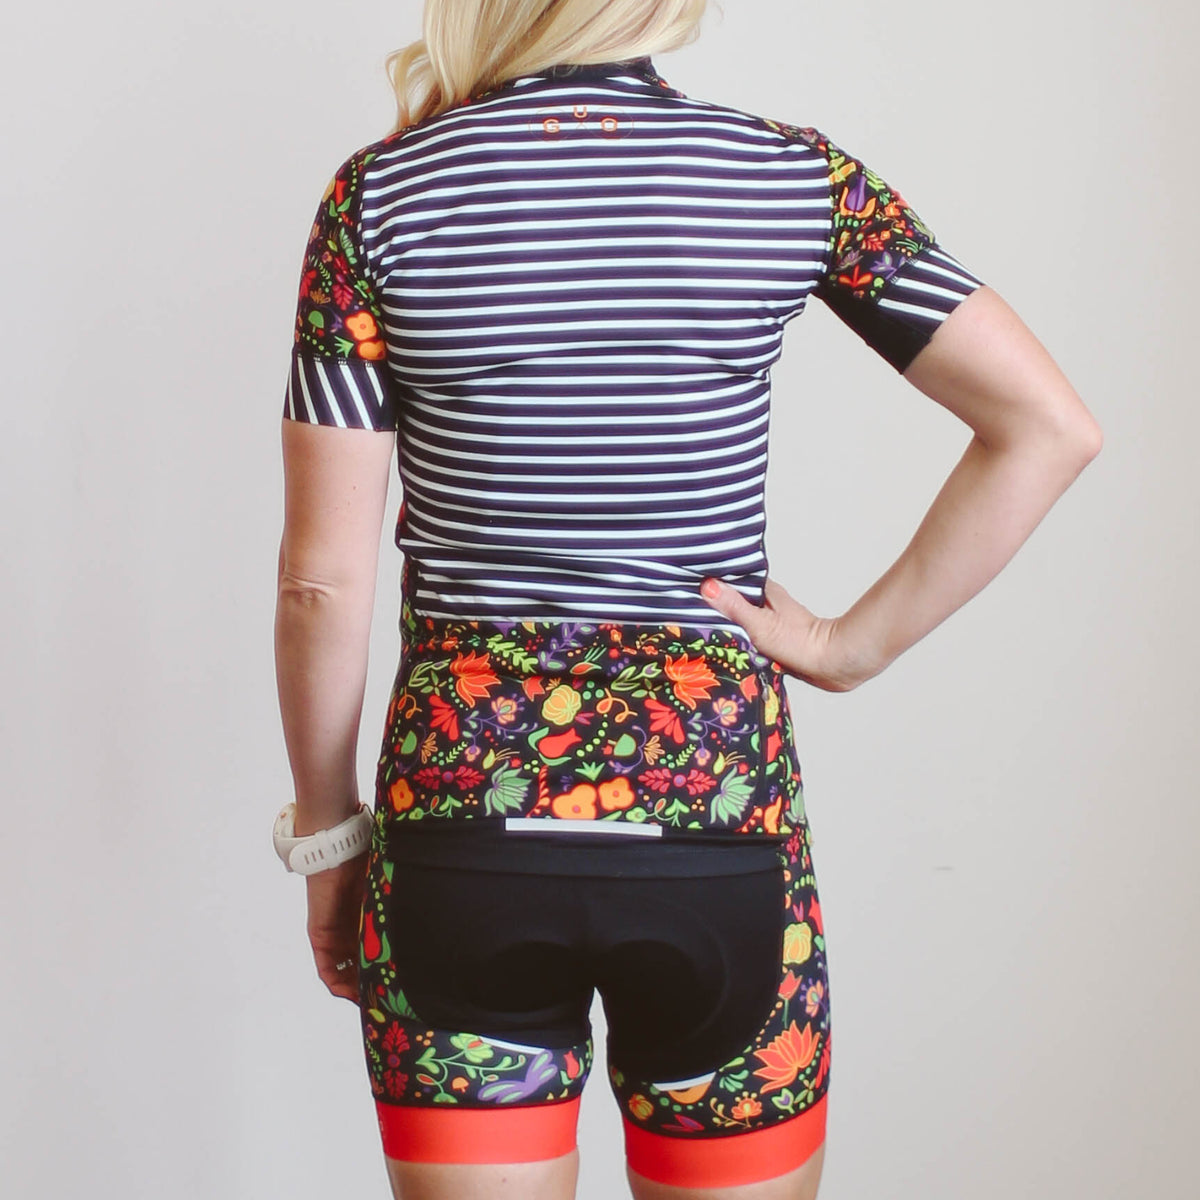 Whimsical Floral Cycling Kit